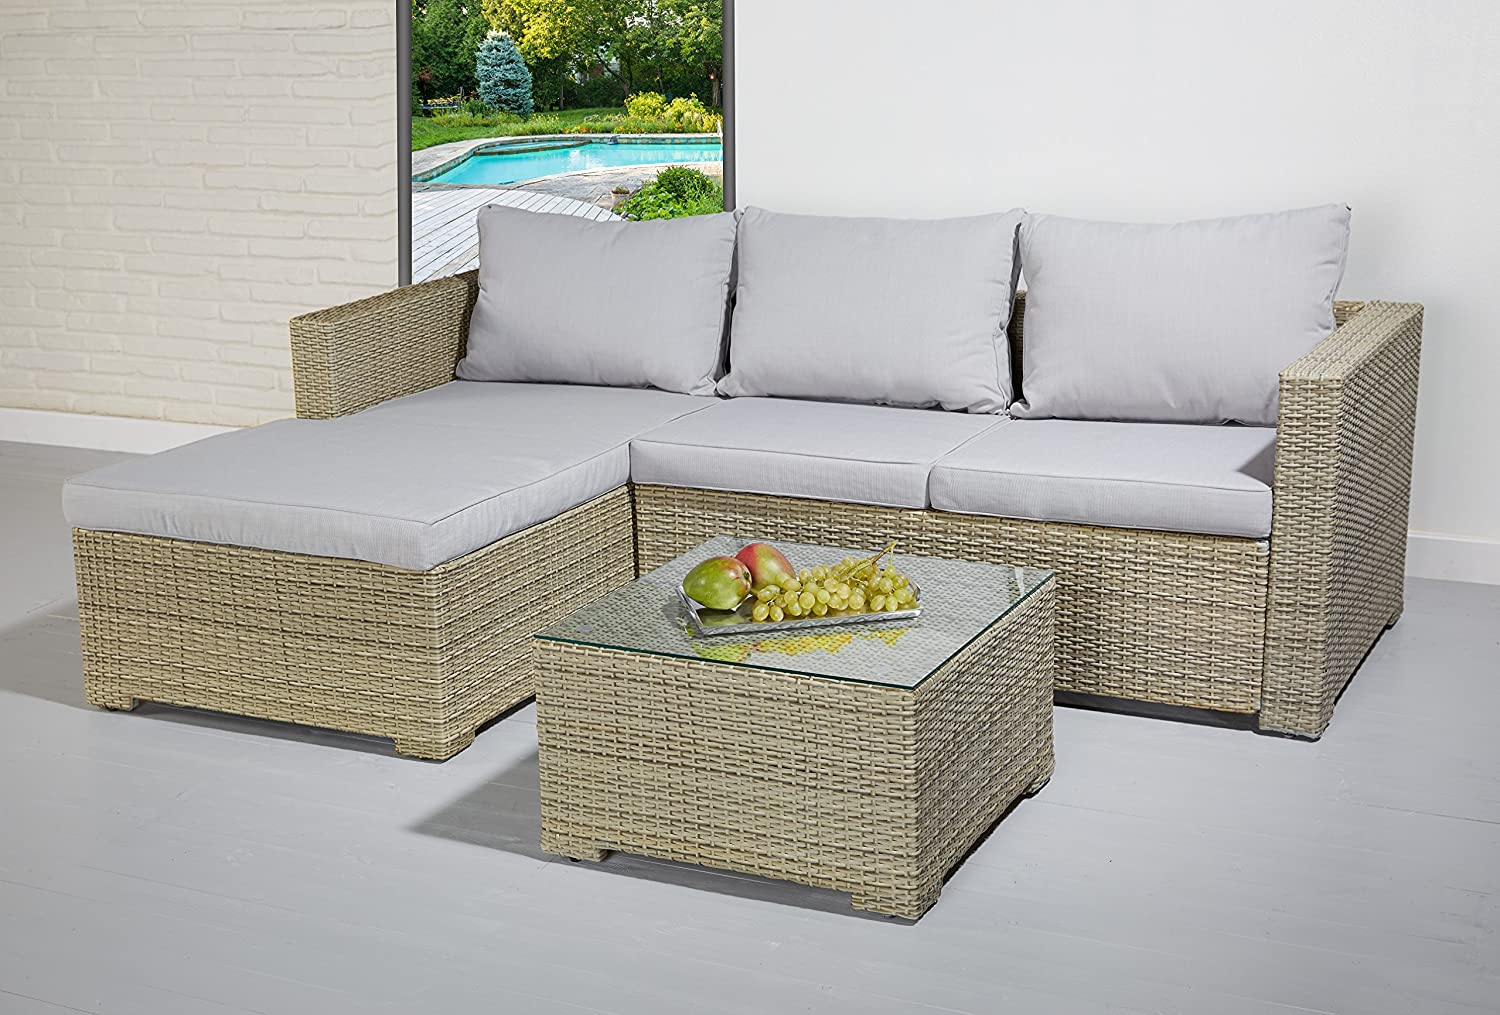 poly rattan essgruppe sitzgruppe braun grau lounge set garnitur gartenm bel g nstig kaufen. Black Bedroom Furniture Sets. Home Design Ideas